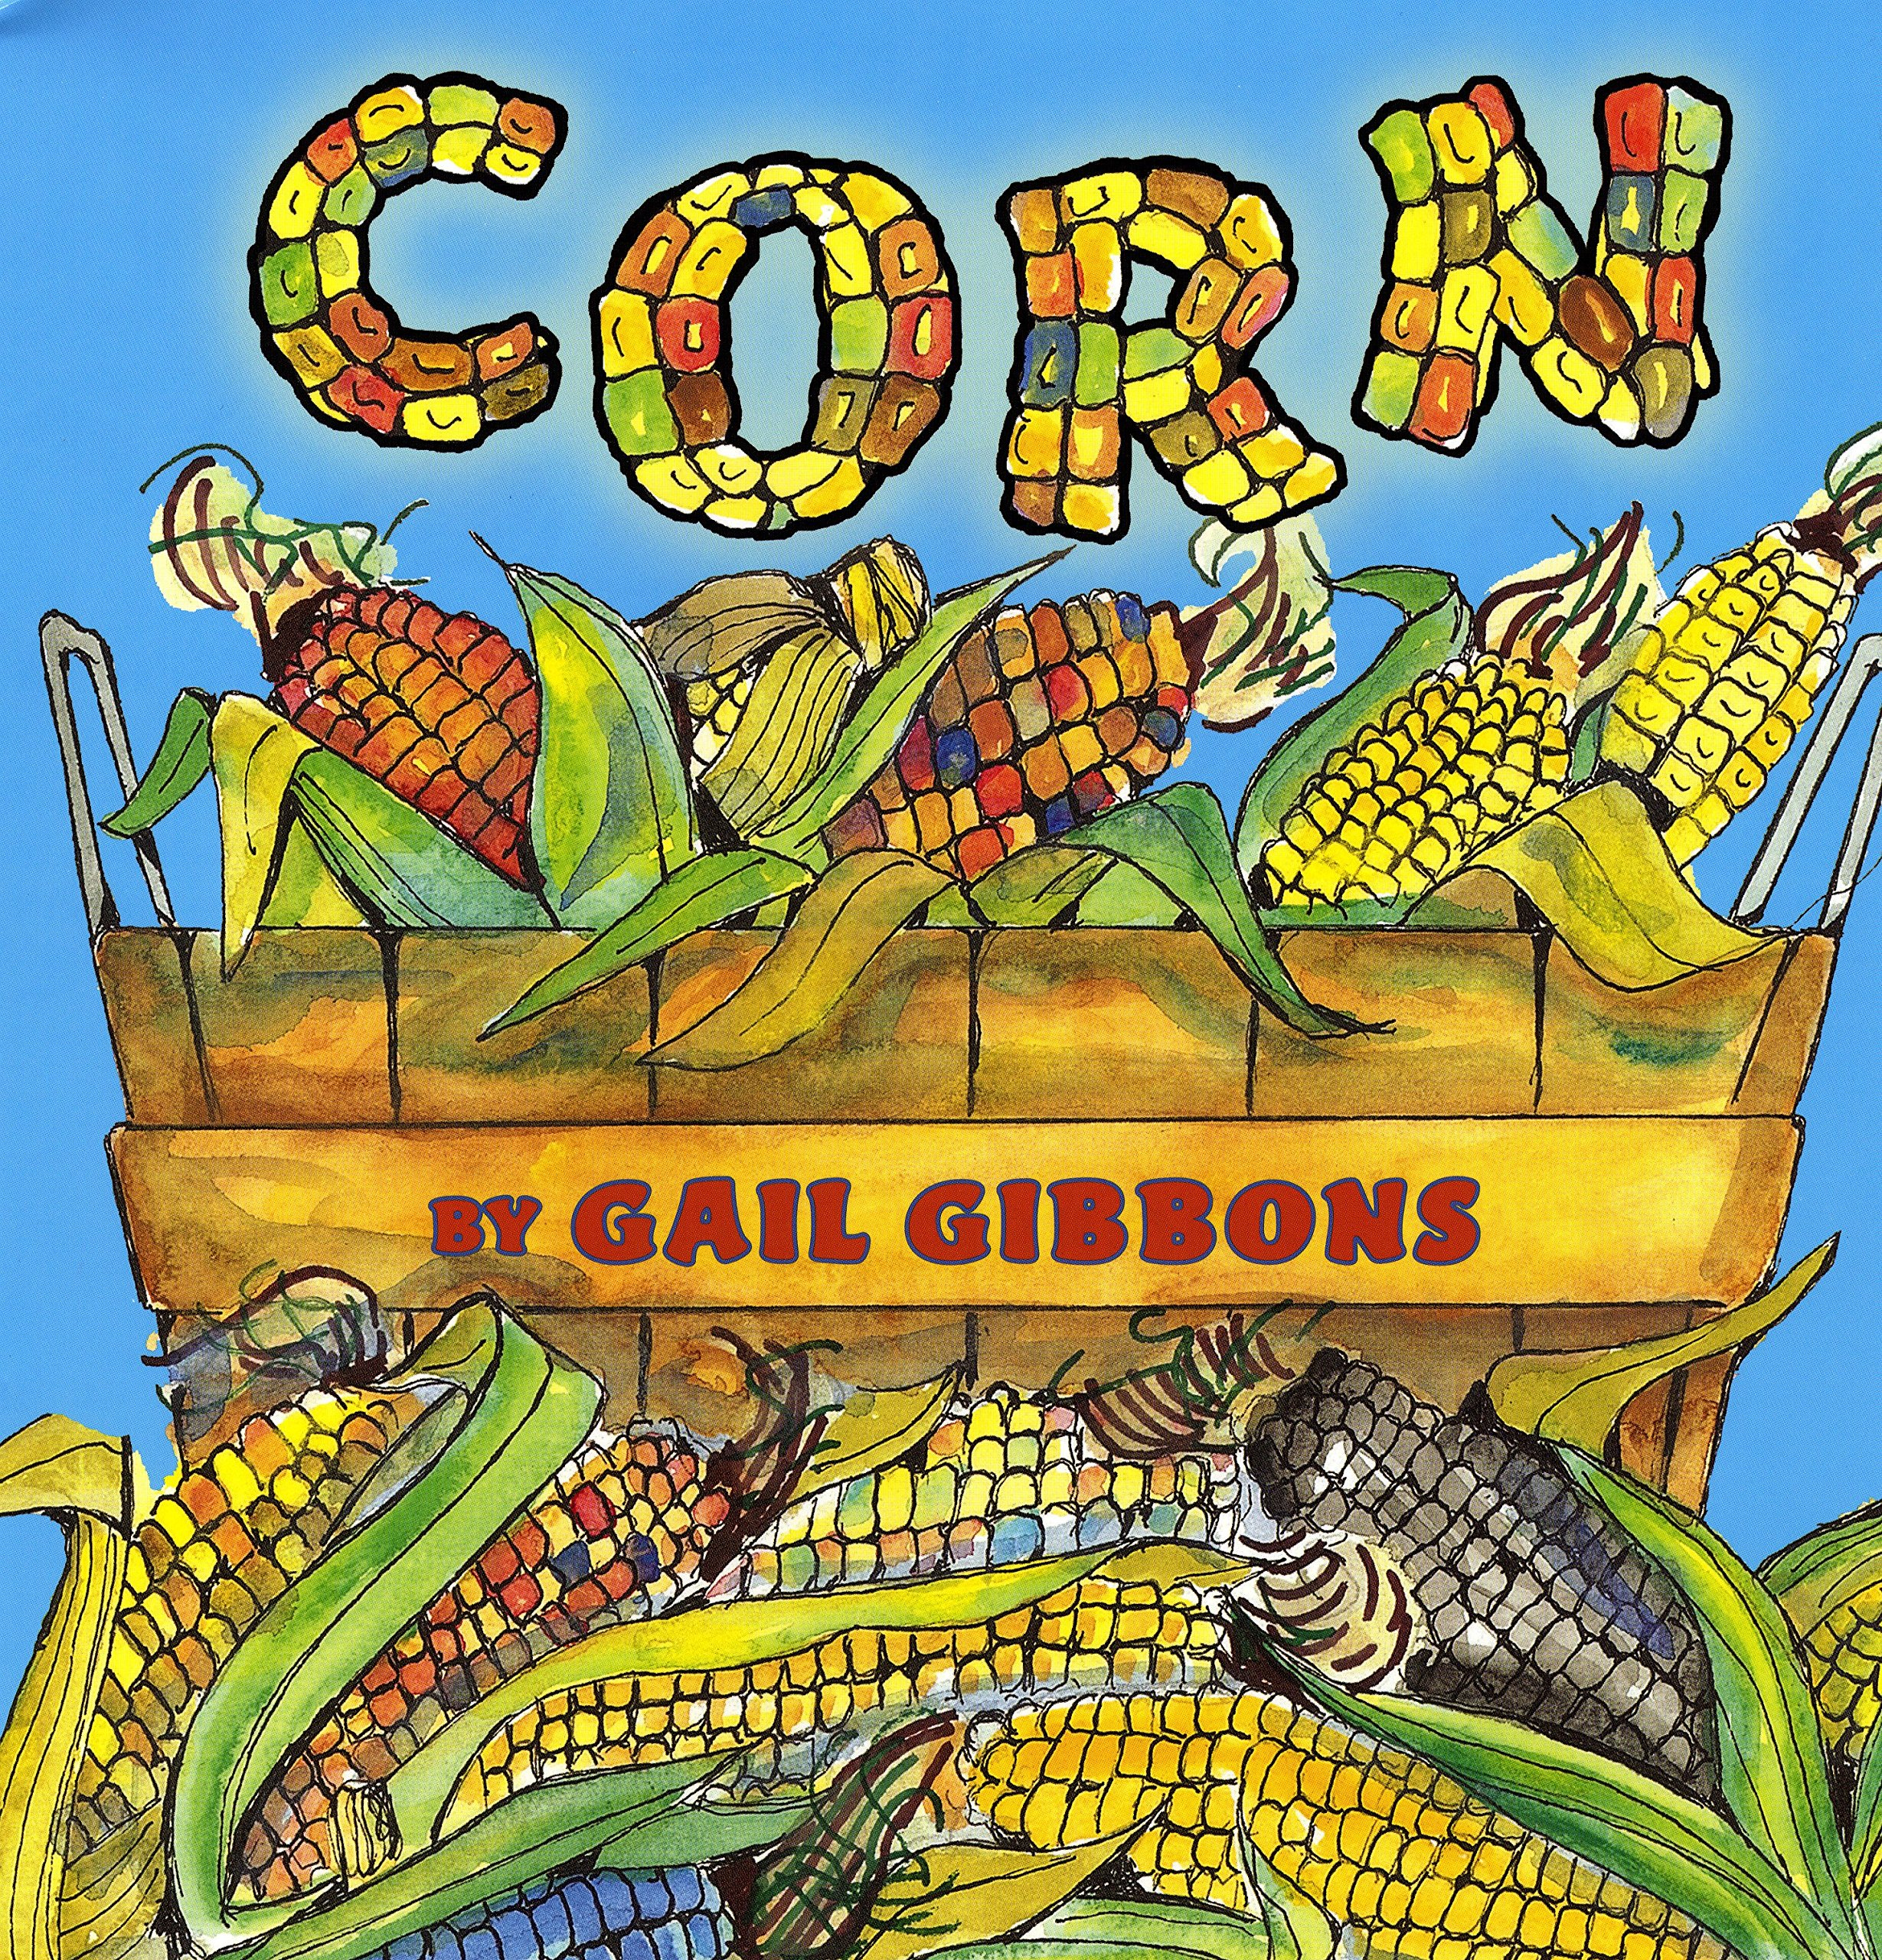 Corn Paperback – September 15, 2009 Gail Gibbons Holiday House 0823422453 JNF014000